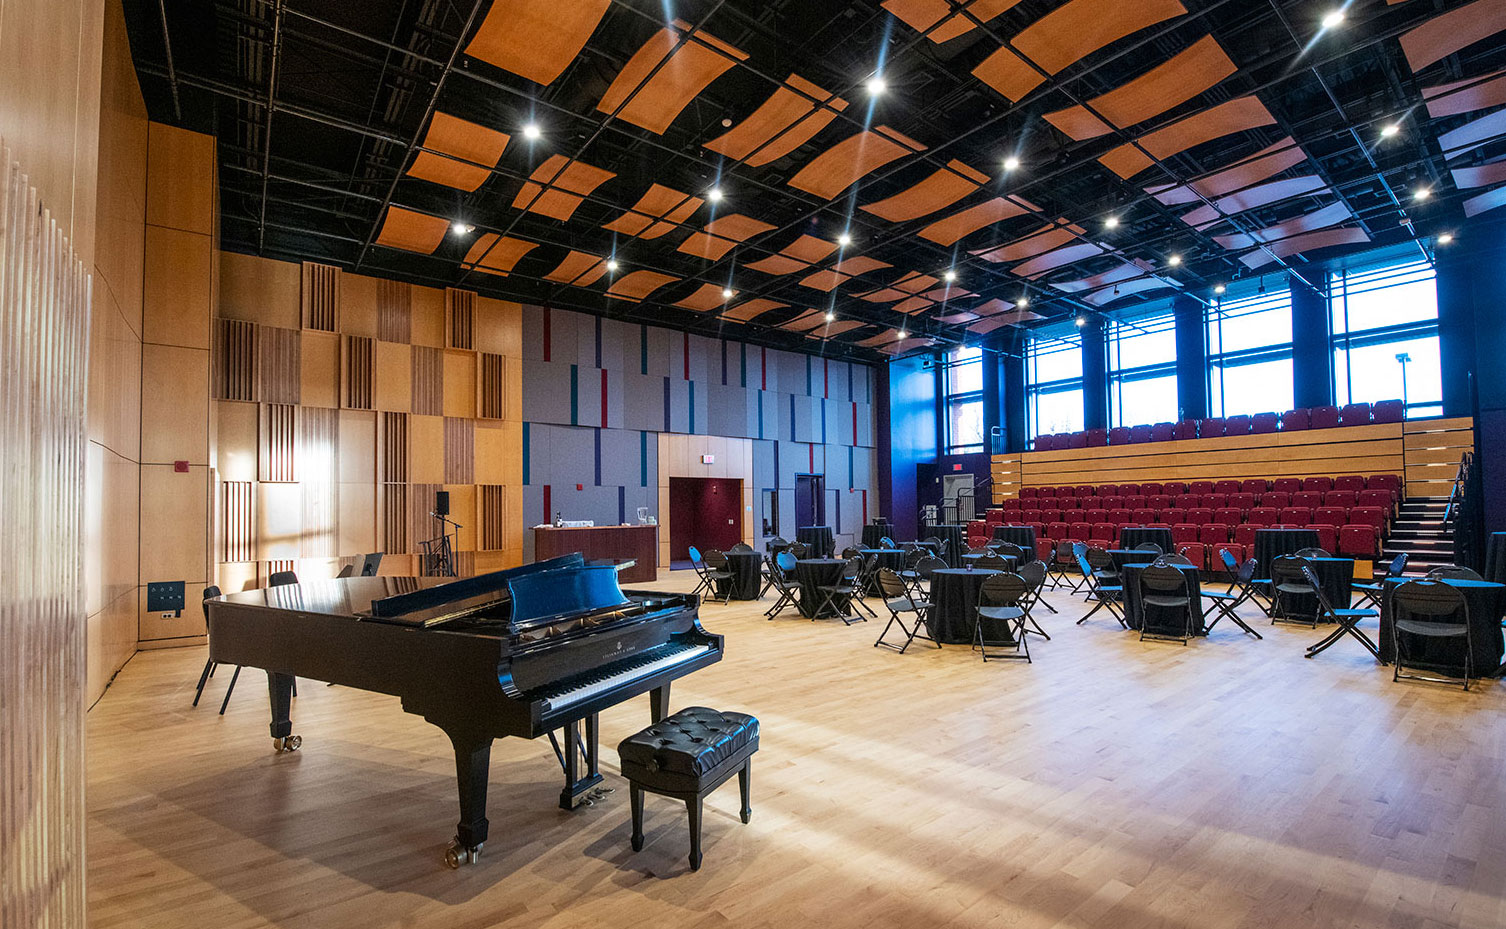 Large Rehearsal Hall inside the new Education and Rehearsal Wing at the Hylton Performing Arts Center.